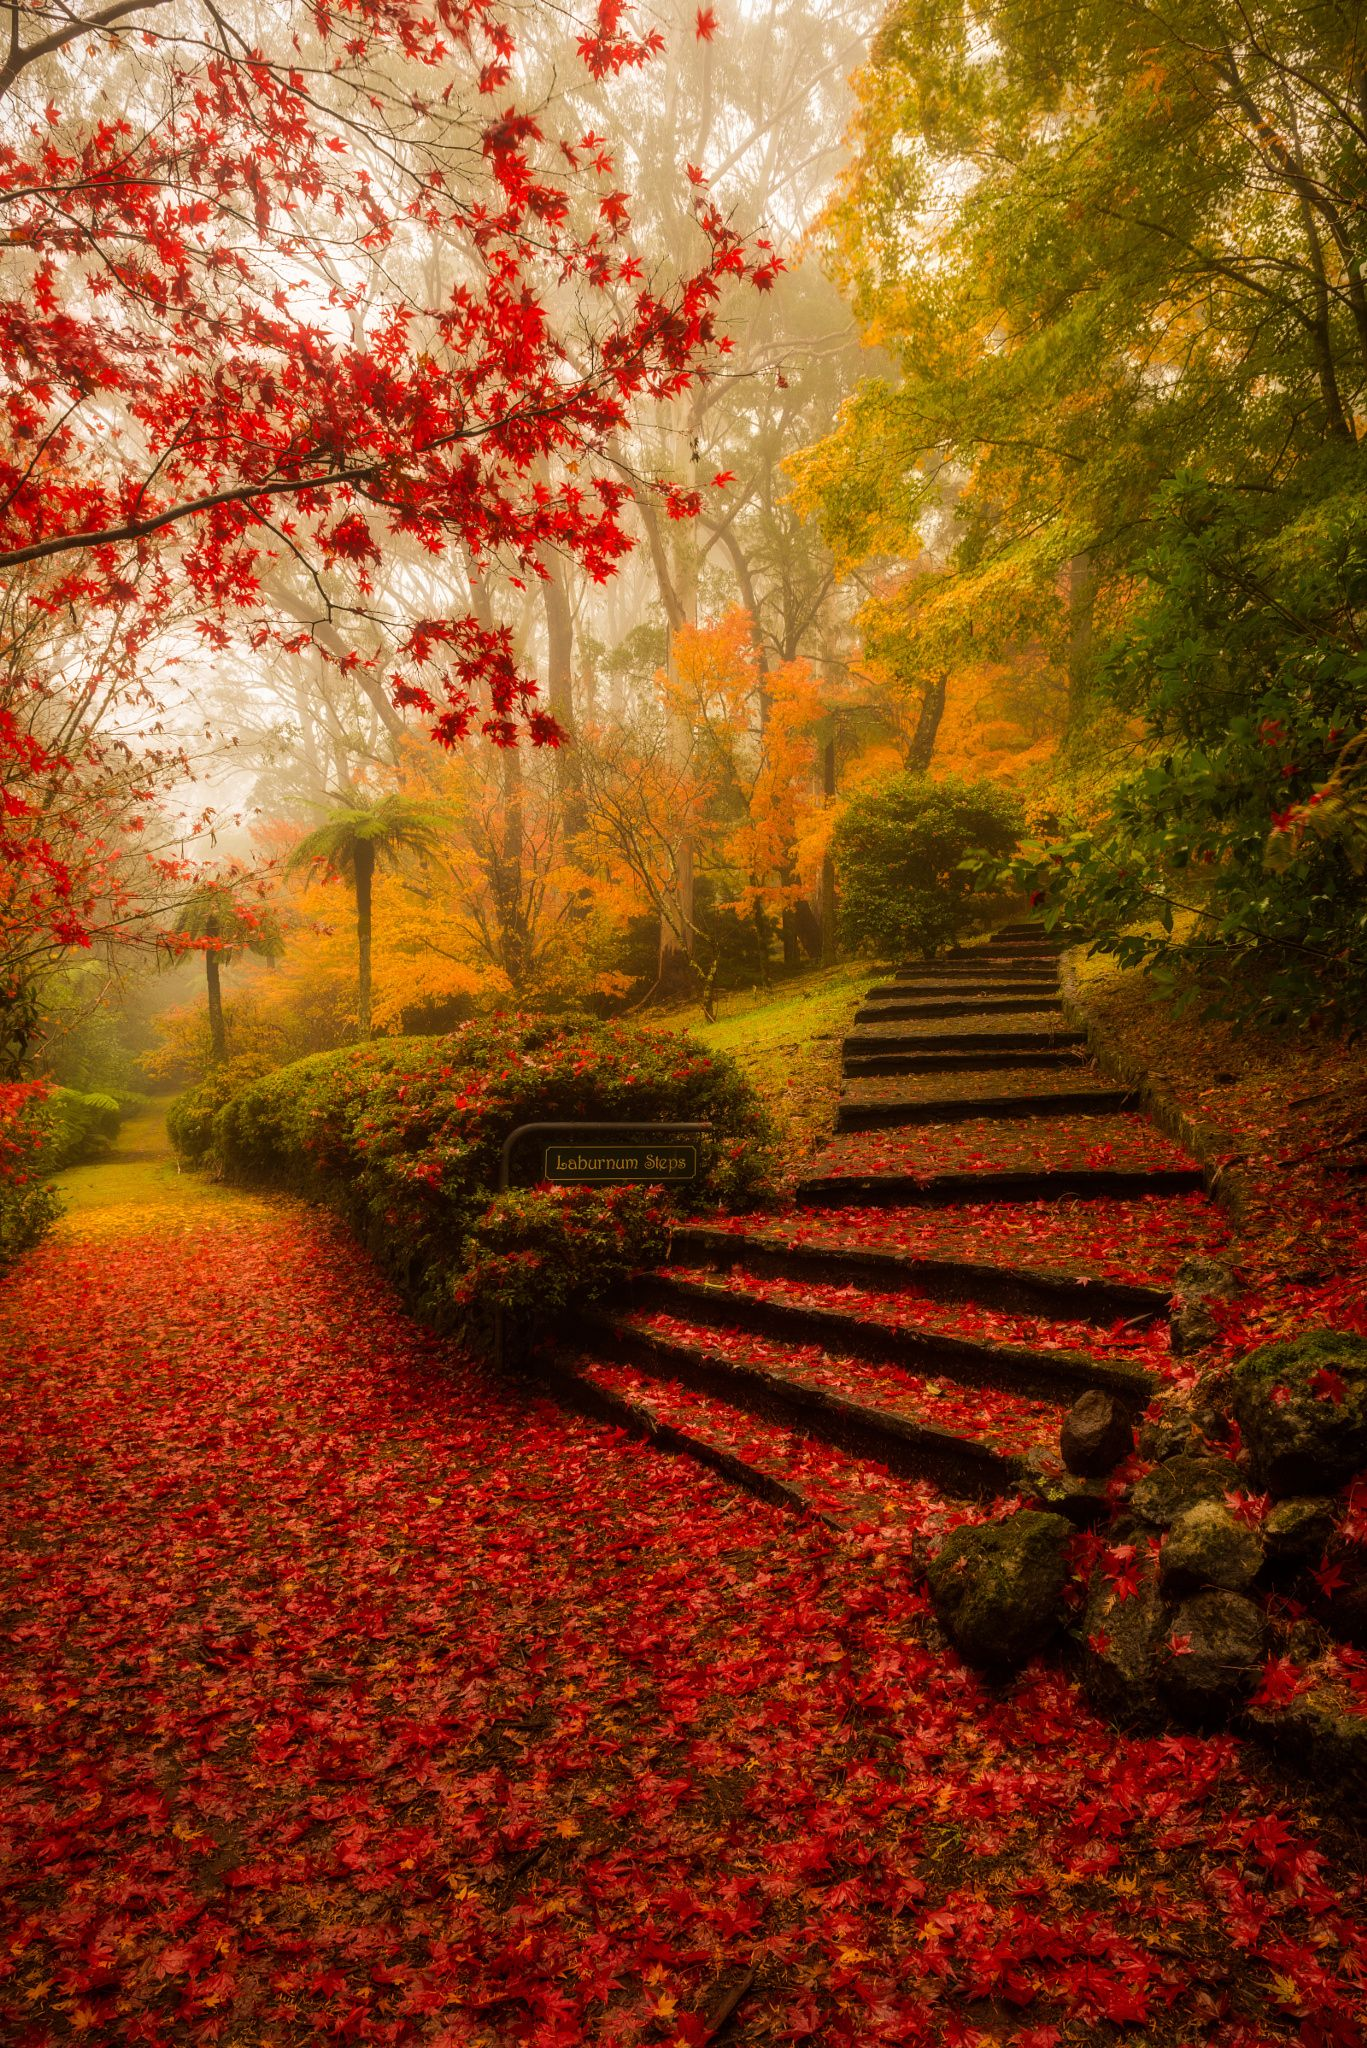 Autumn Beauty .. #nature #red #leaves #stairs #gardens #autumn ...